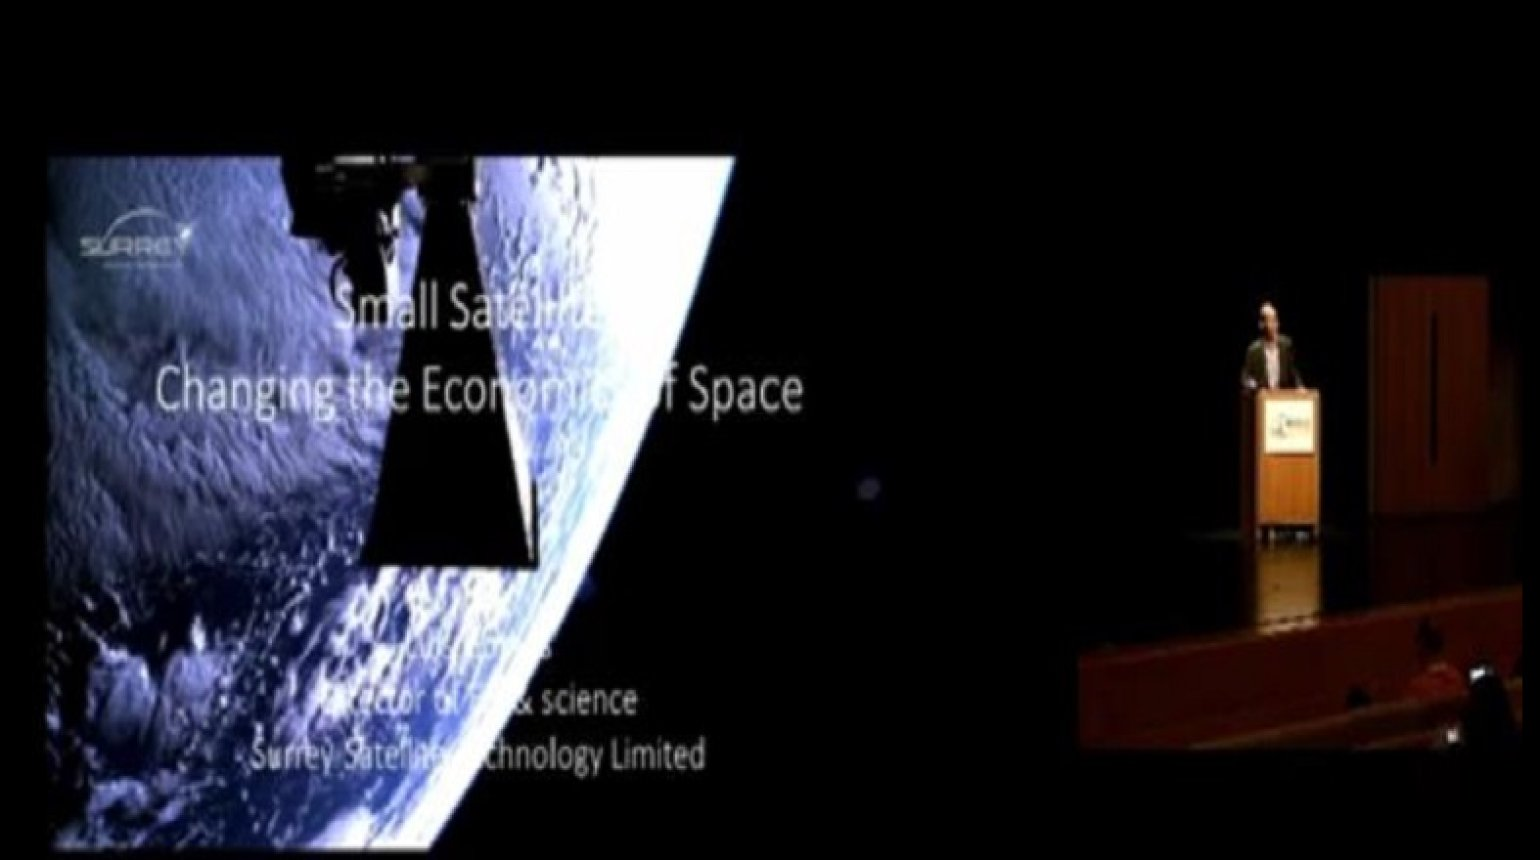 Small Satellites Changing the Economics of Space